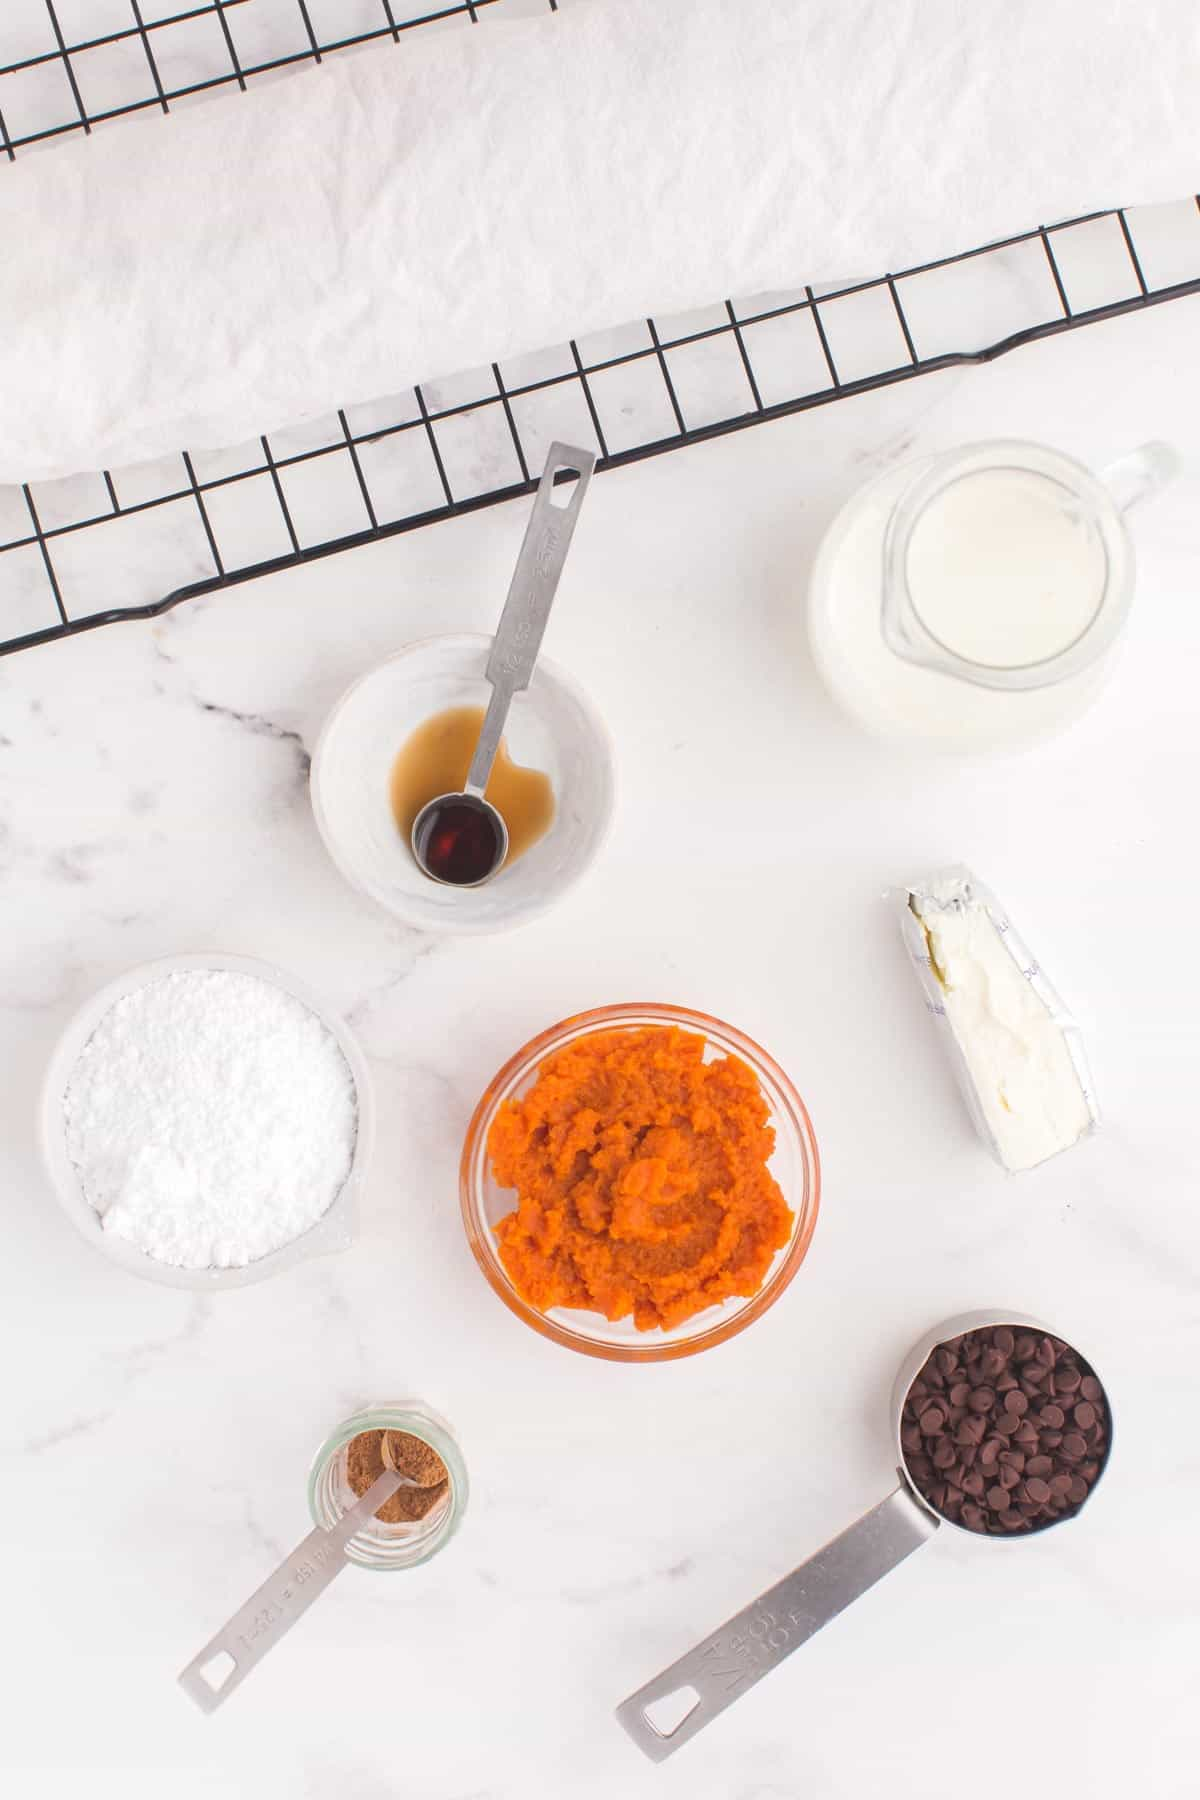 Ingredients for pumpkin cheesecake filling in bowls